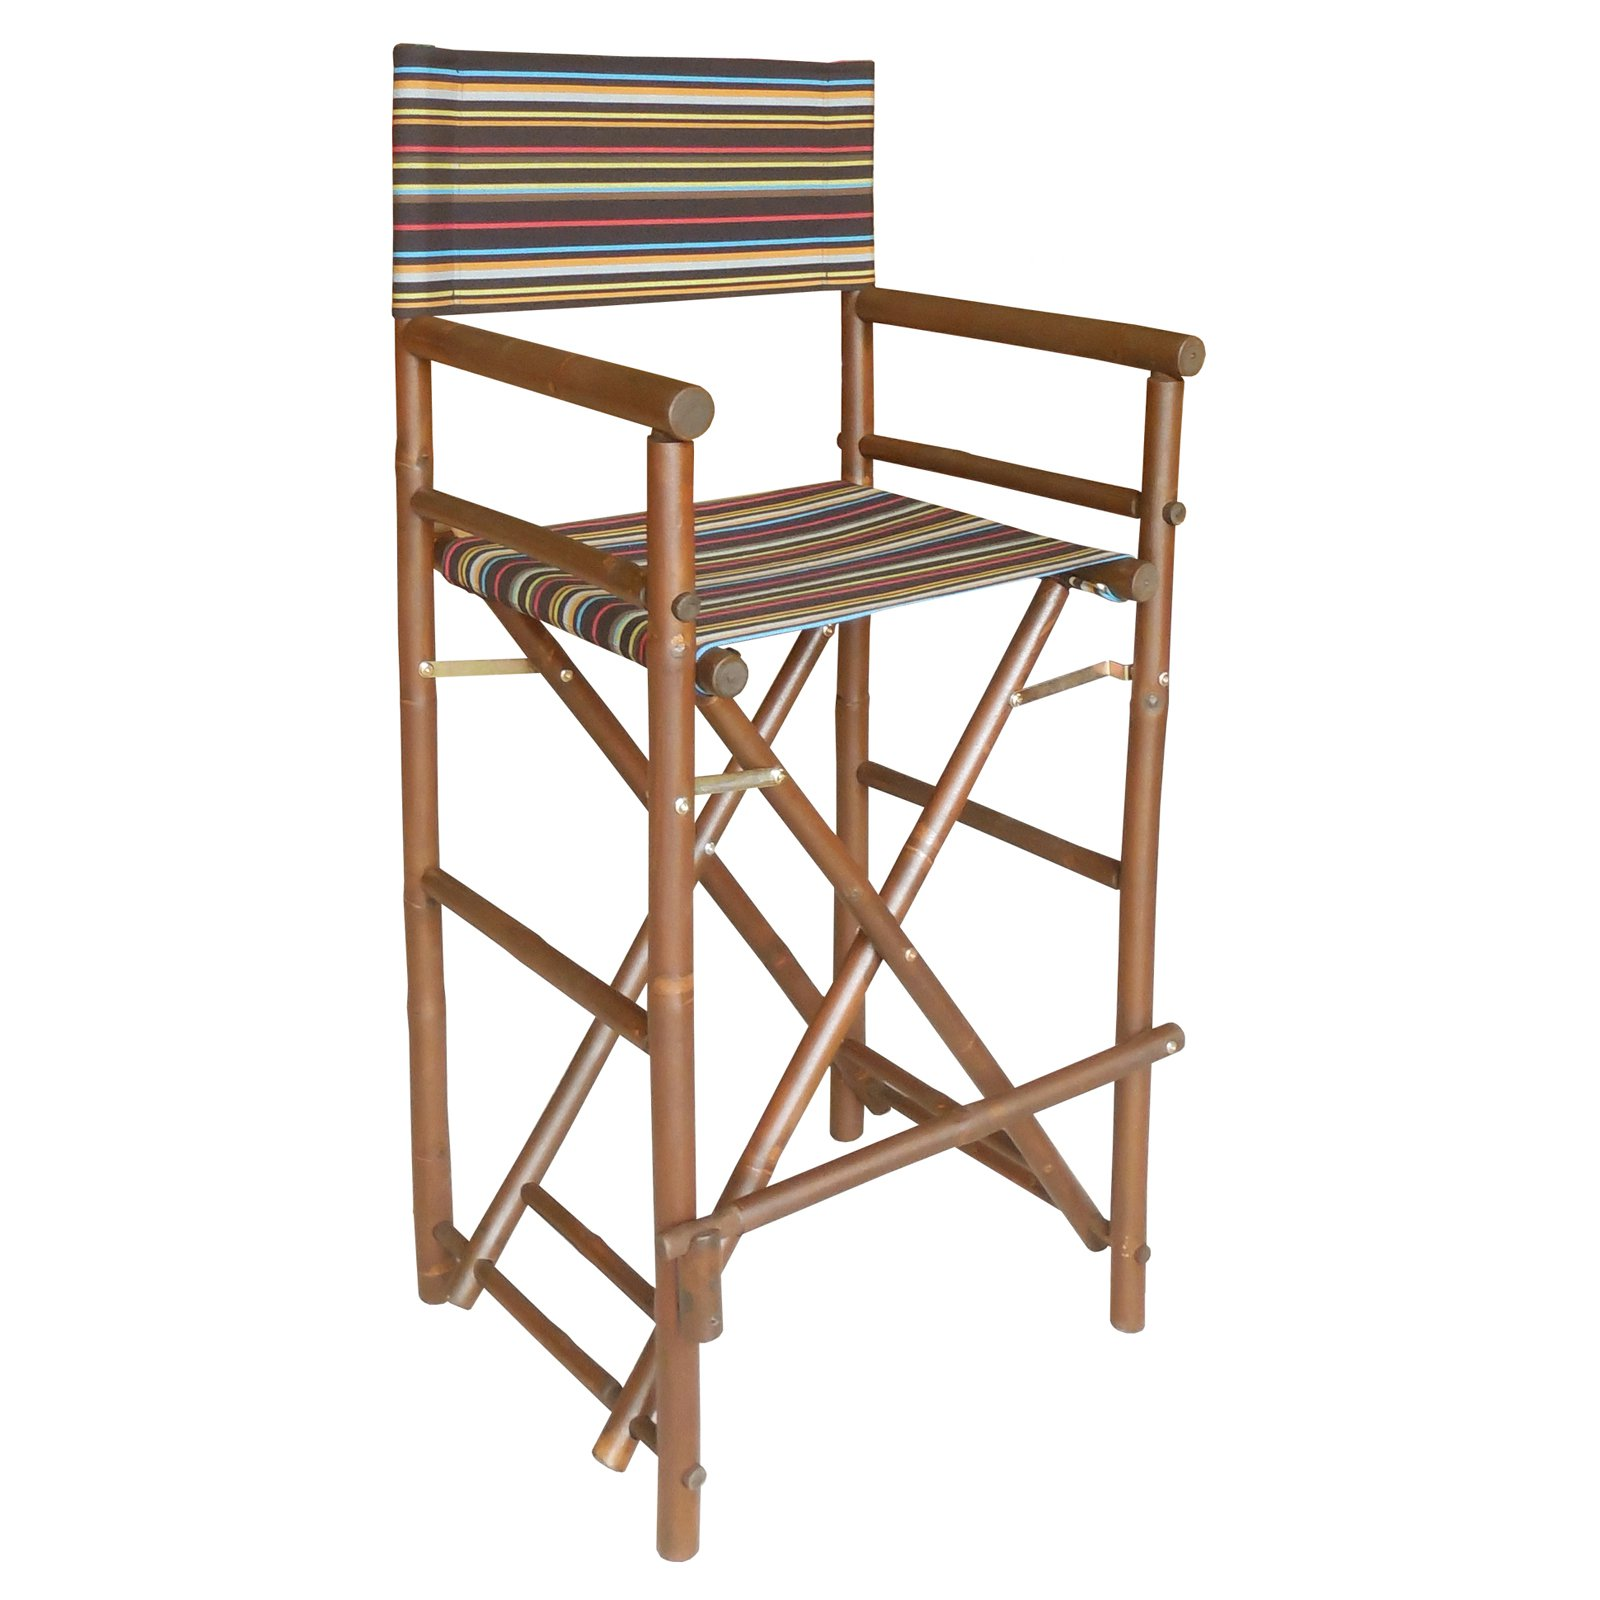 striped directors chairs baseball folding bamboo 29 in bar height chair with cover set of 2 walmart com